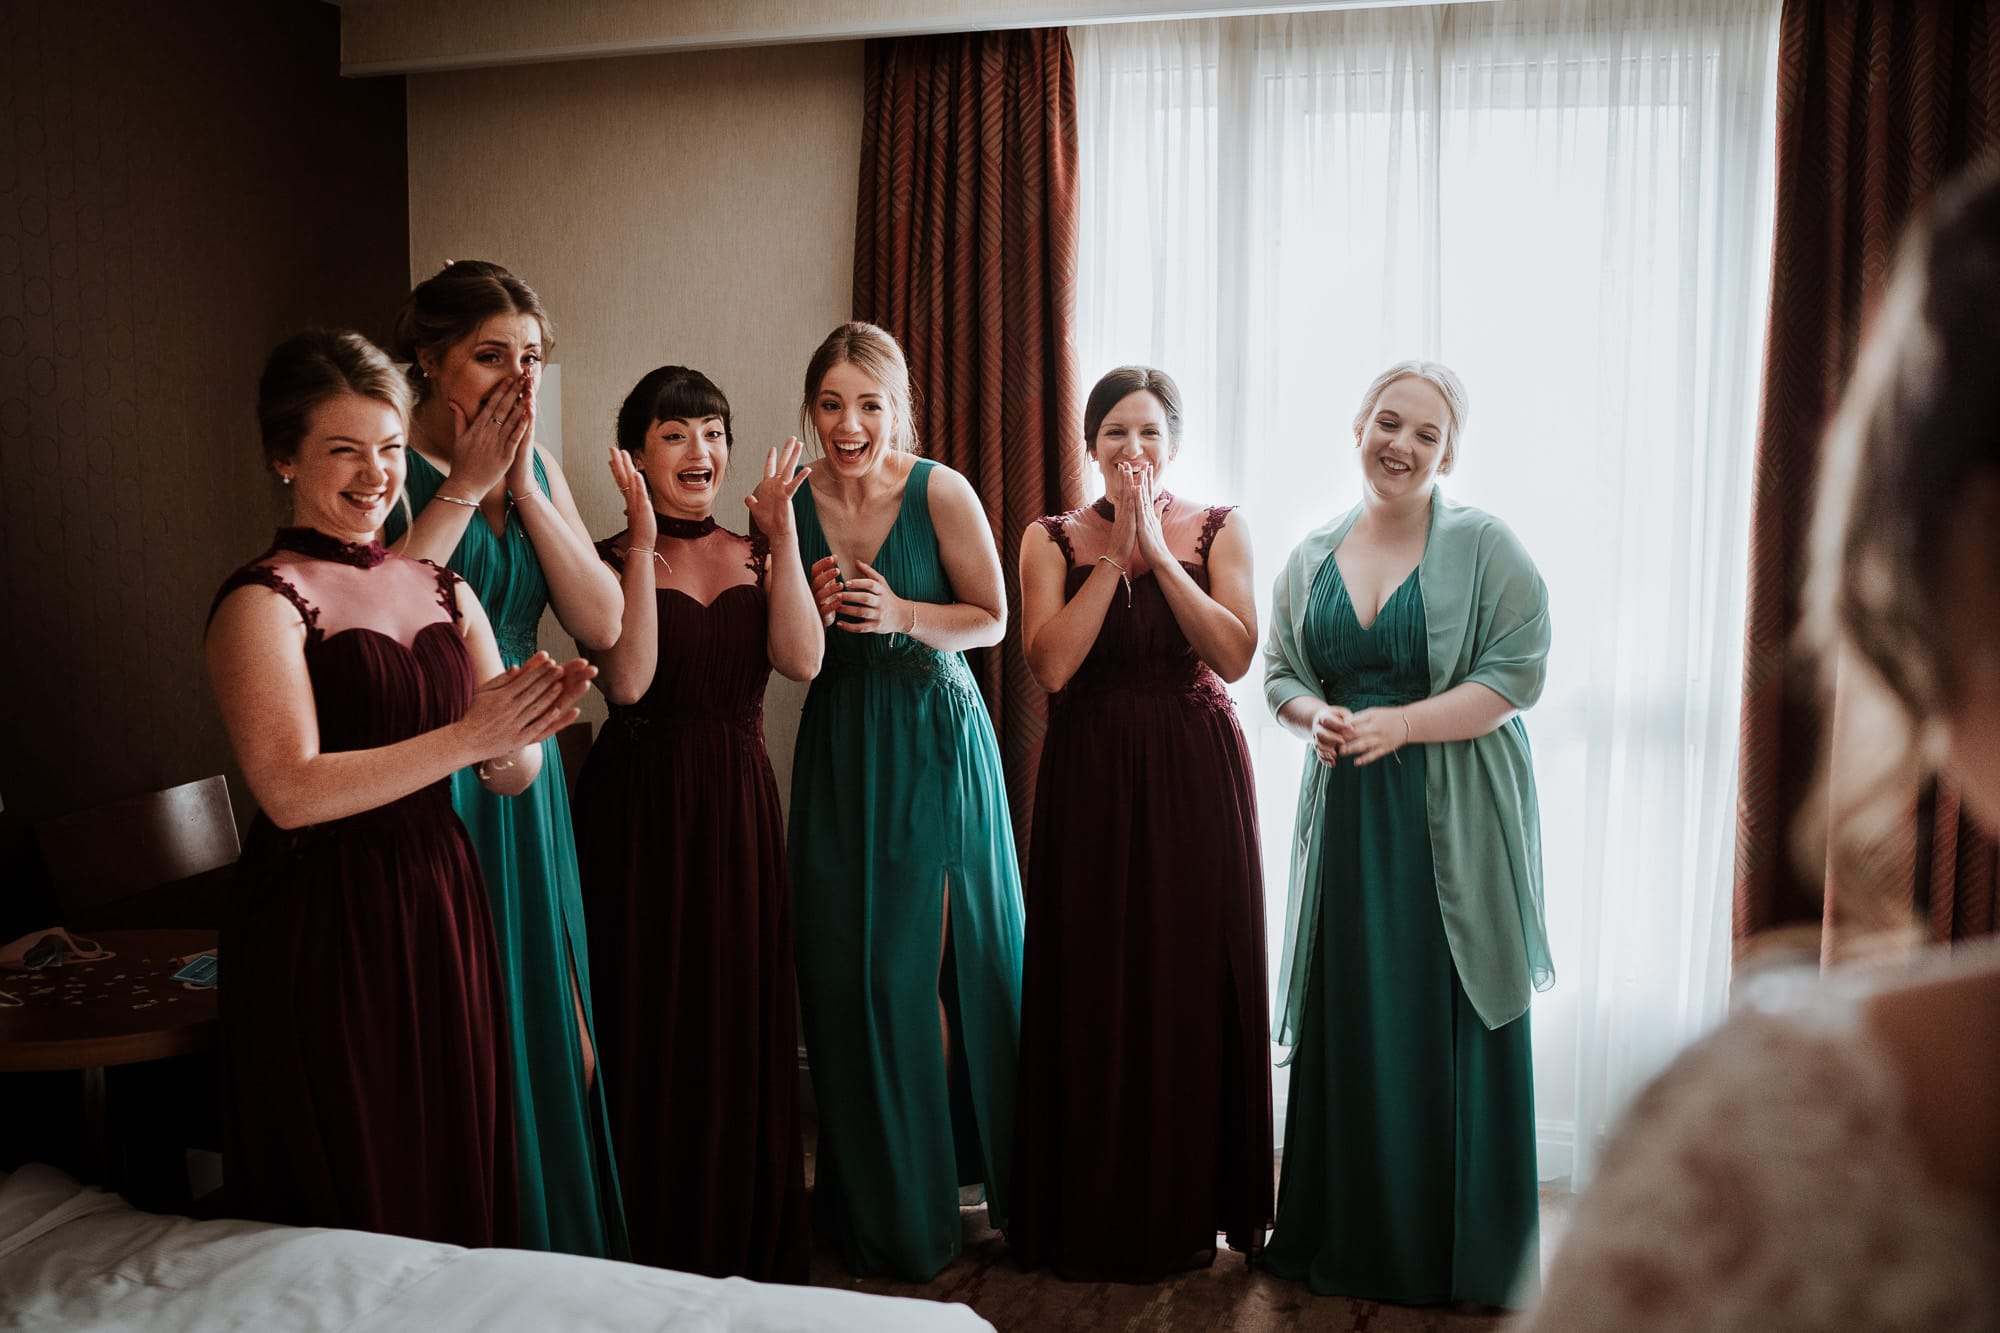 Documentary style photography of bridesmaids seeing bride for the first time